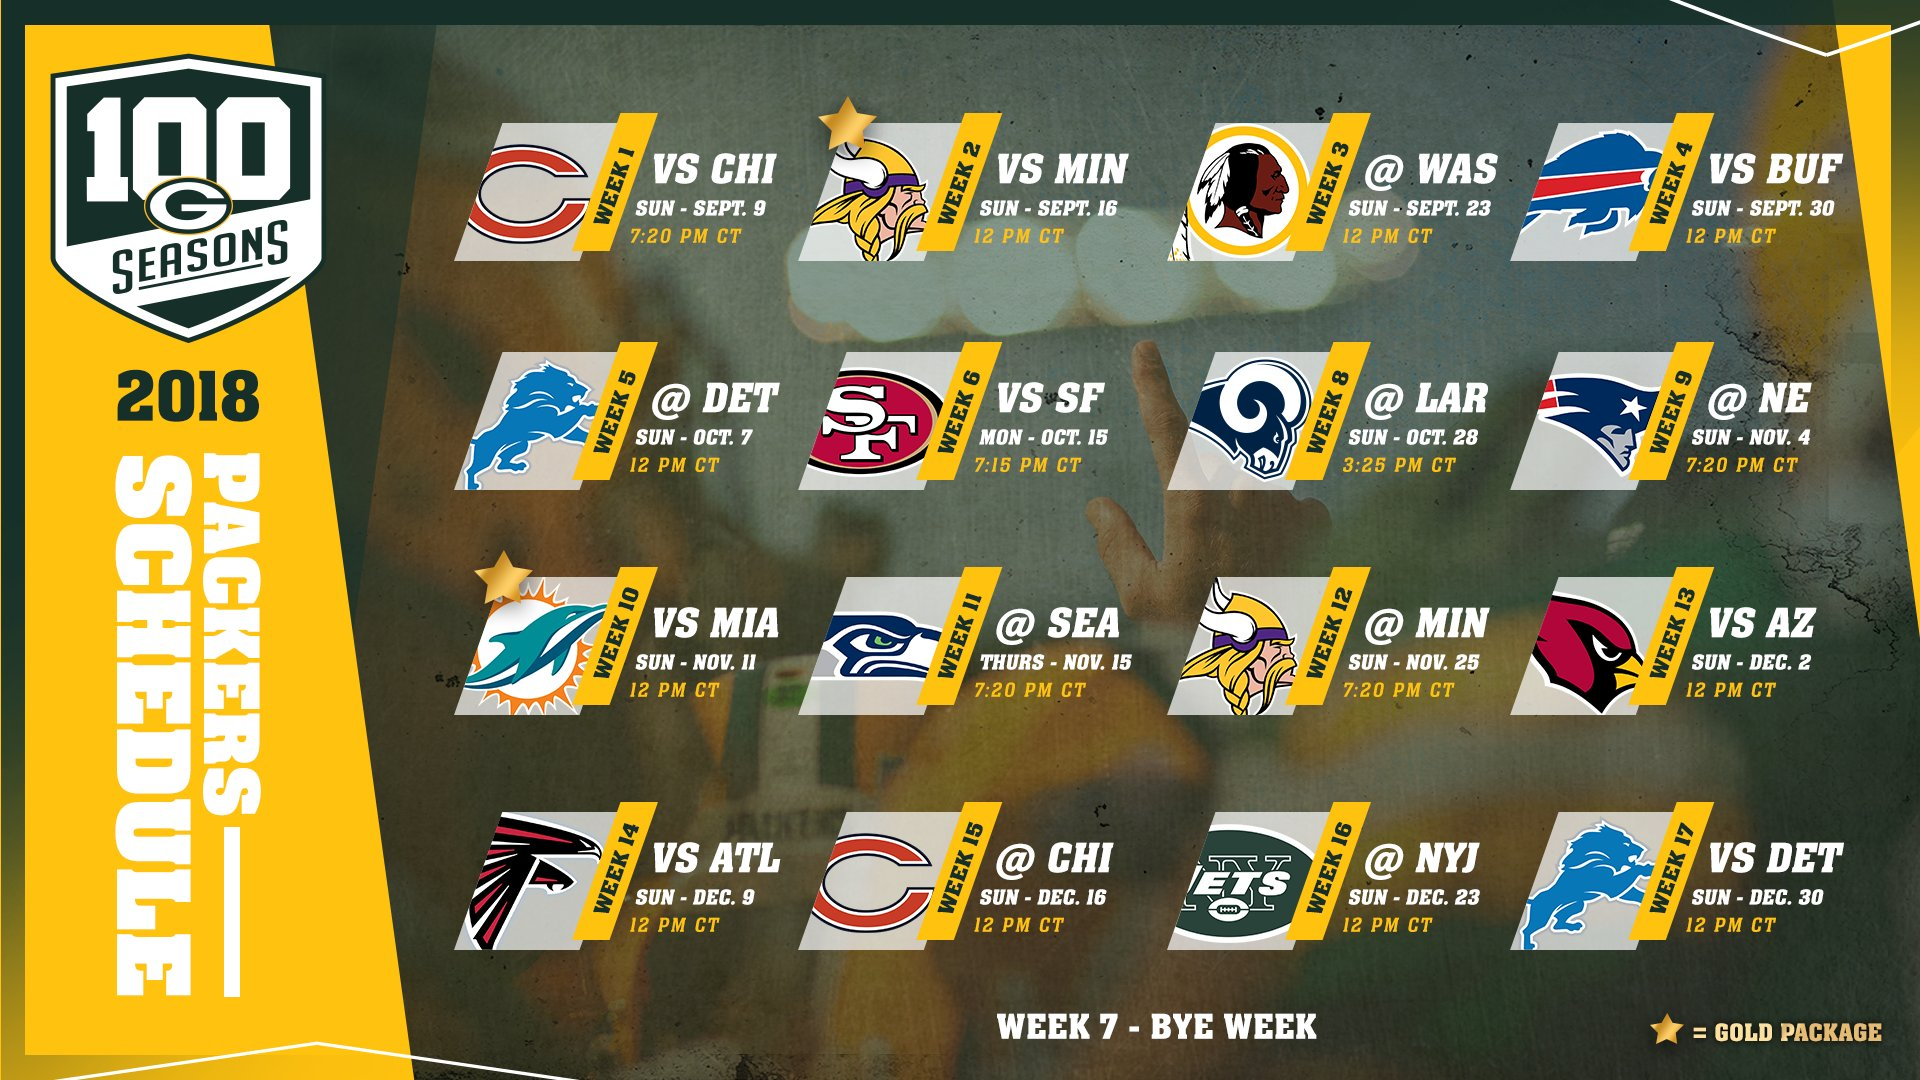 The 2018 Green Bay #Packers schedule is set!  ��: https://t.co/11LbDm9kMY   #ScheduleRelease2018 #GoPackGo https://t.co/8Se6m8MRZ6